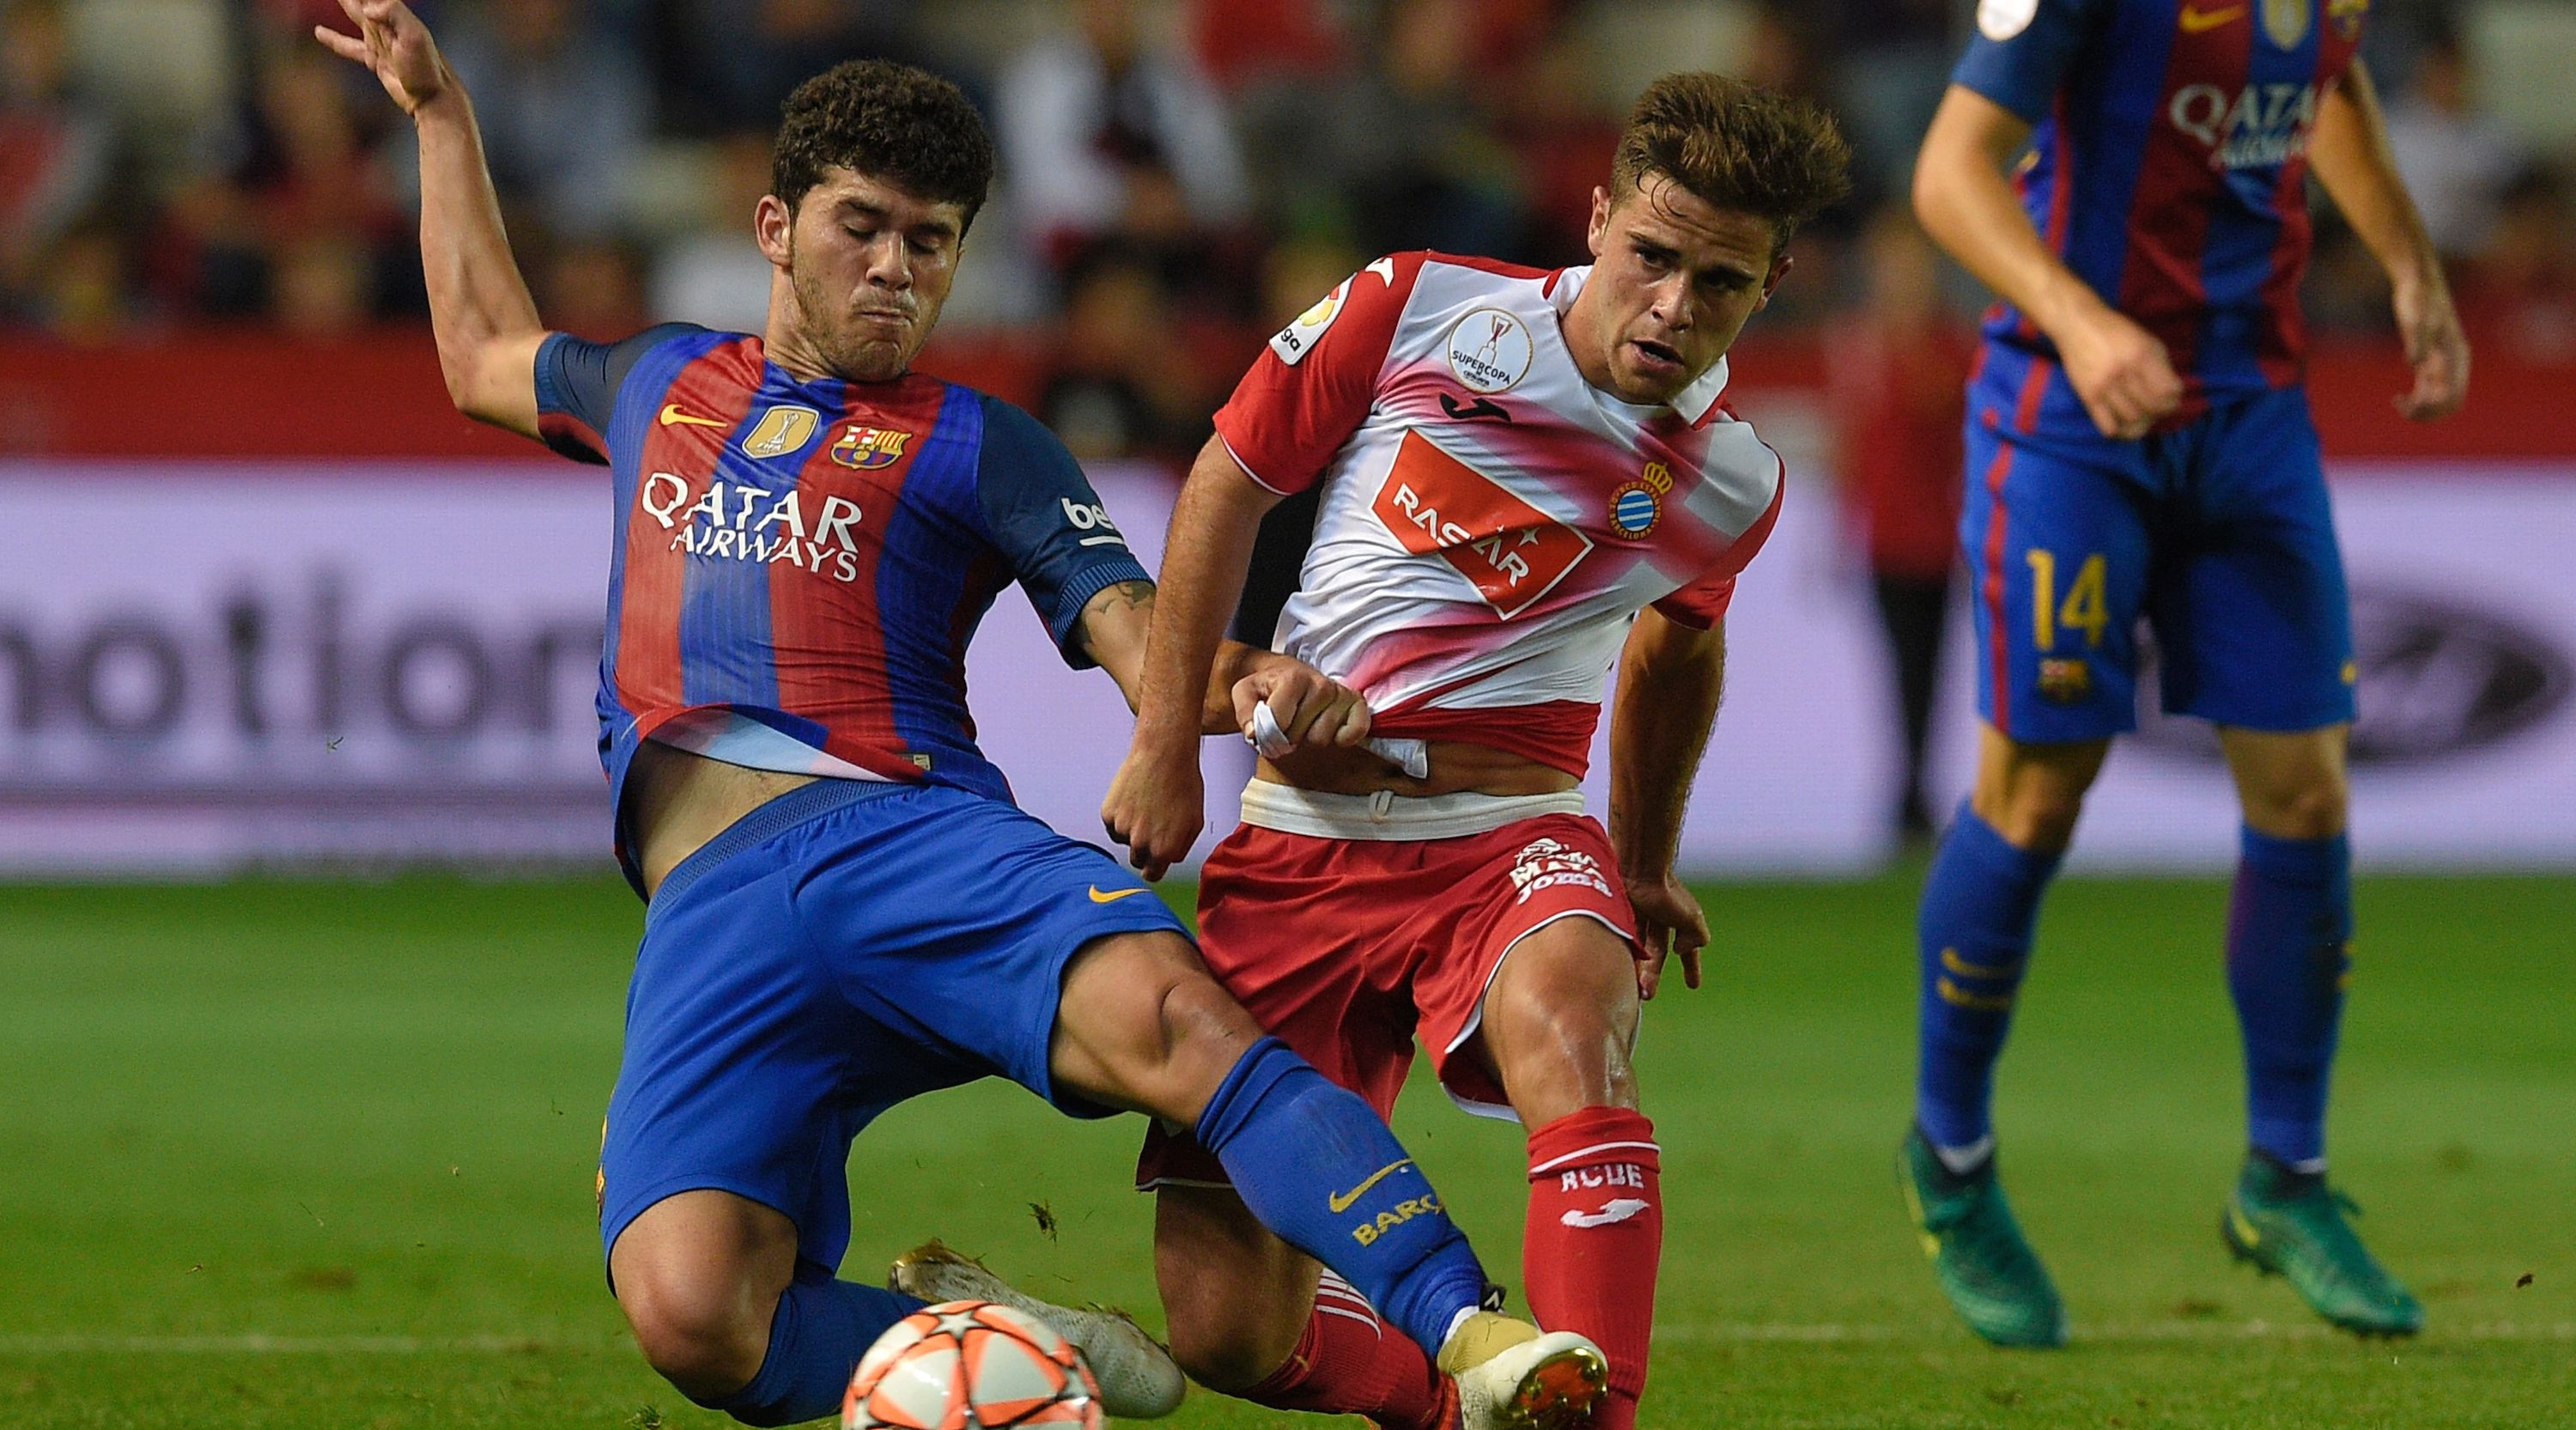 Barcelona's midfielder Carles Alena (L) vies with Espanyol's forward Oscar Melendo during the Catalonia Super Copa football match between FC Barcelona and RCD Espanyol at Nou Stadium in Tarragona on October 25, 2016. / AFP / LLUIS GENE (Photo credit should read LLUIS GENE/AFP/Getty Images)